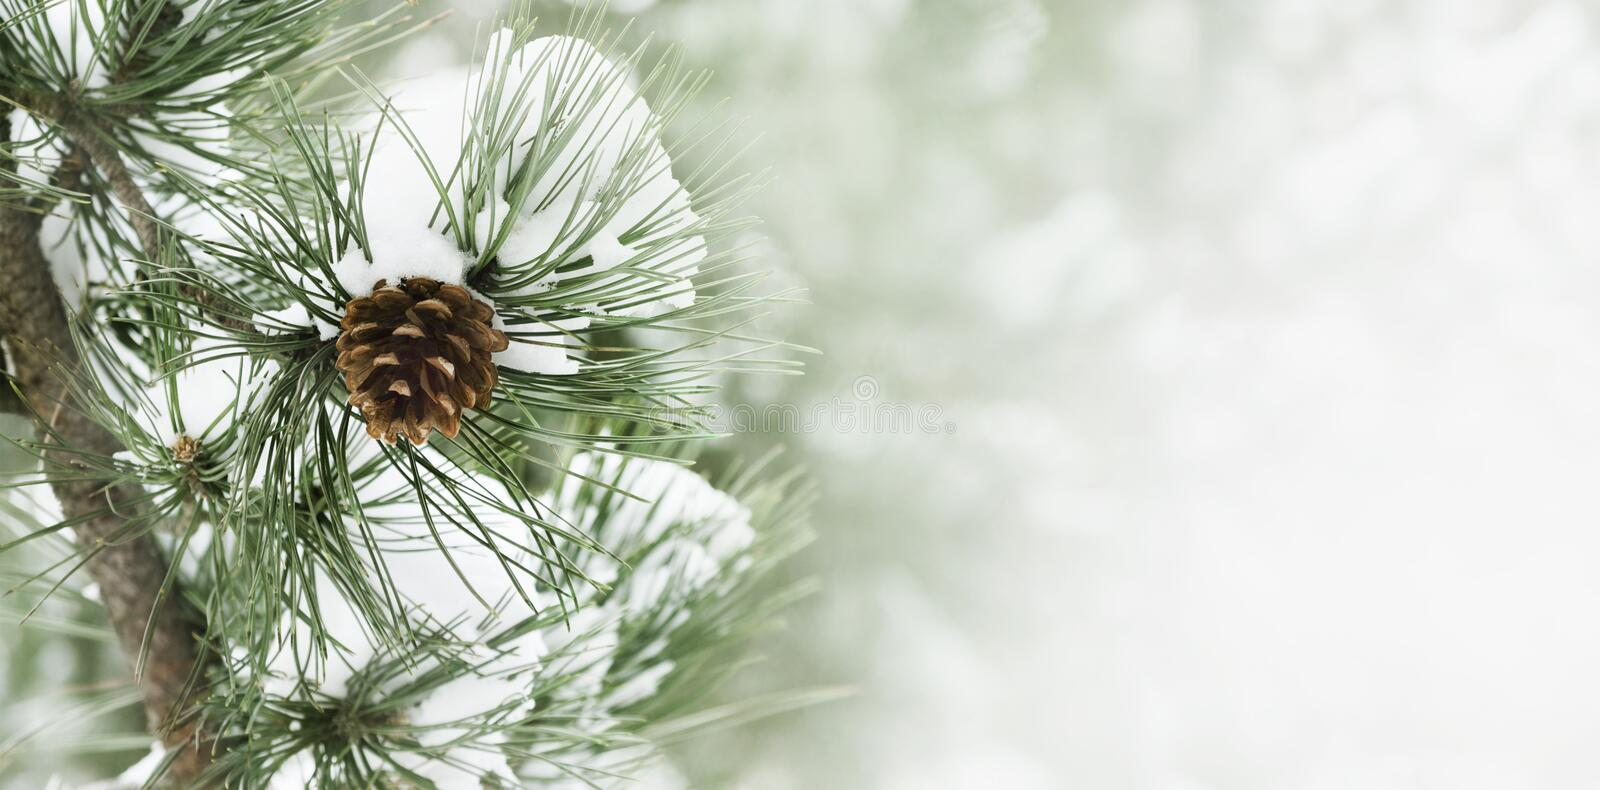 Pine branch under snow stock images